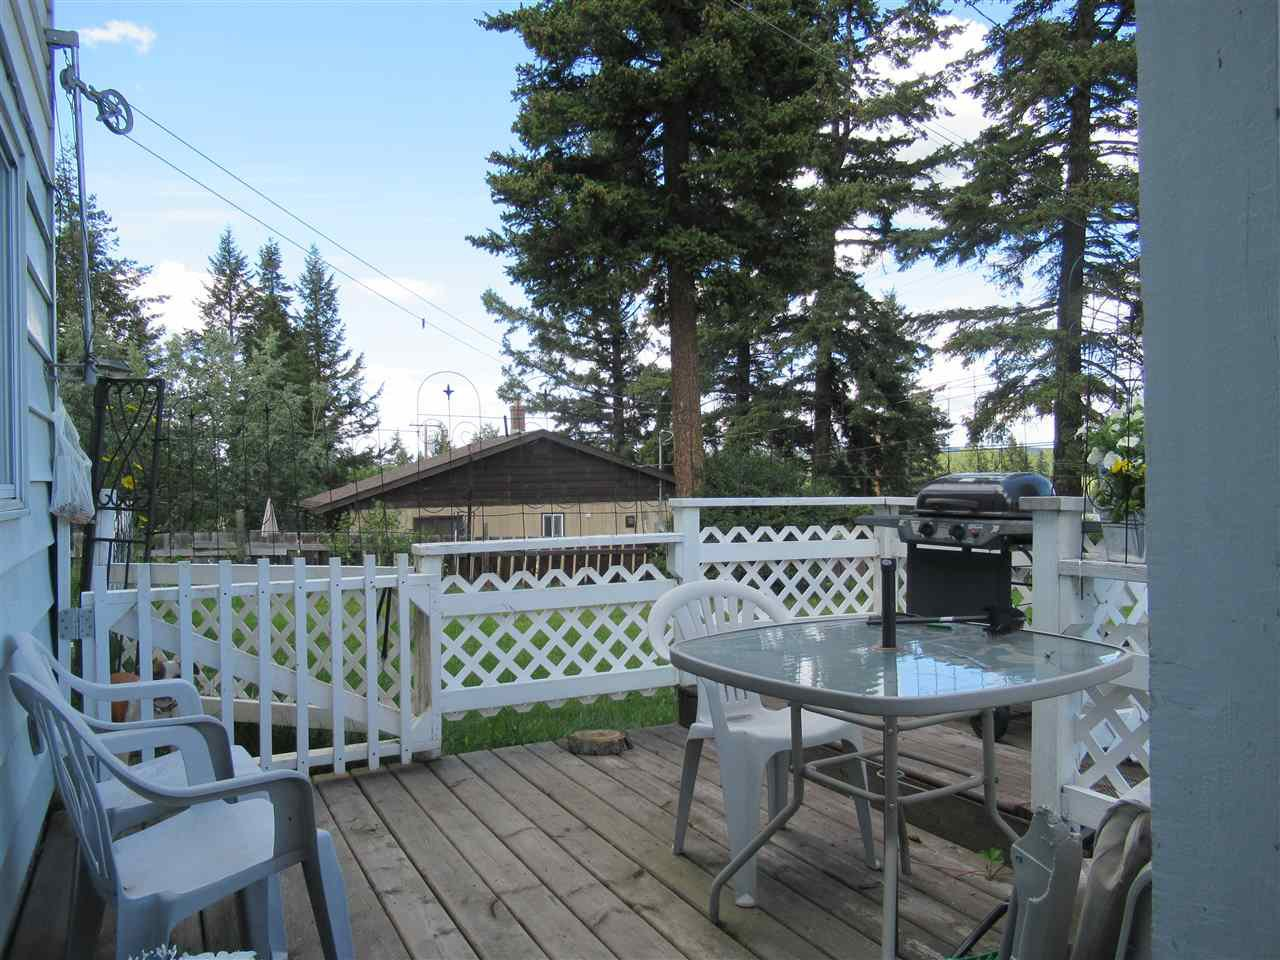 Photo 19: Photos: 1631 DOG CREEK Road in Williams Lake: Esler/Dog Creek House for sale (Williams Lake (Zone 27))  : MLS®# R2390079